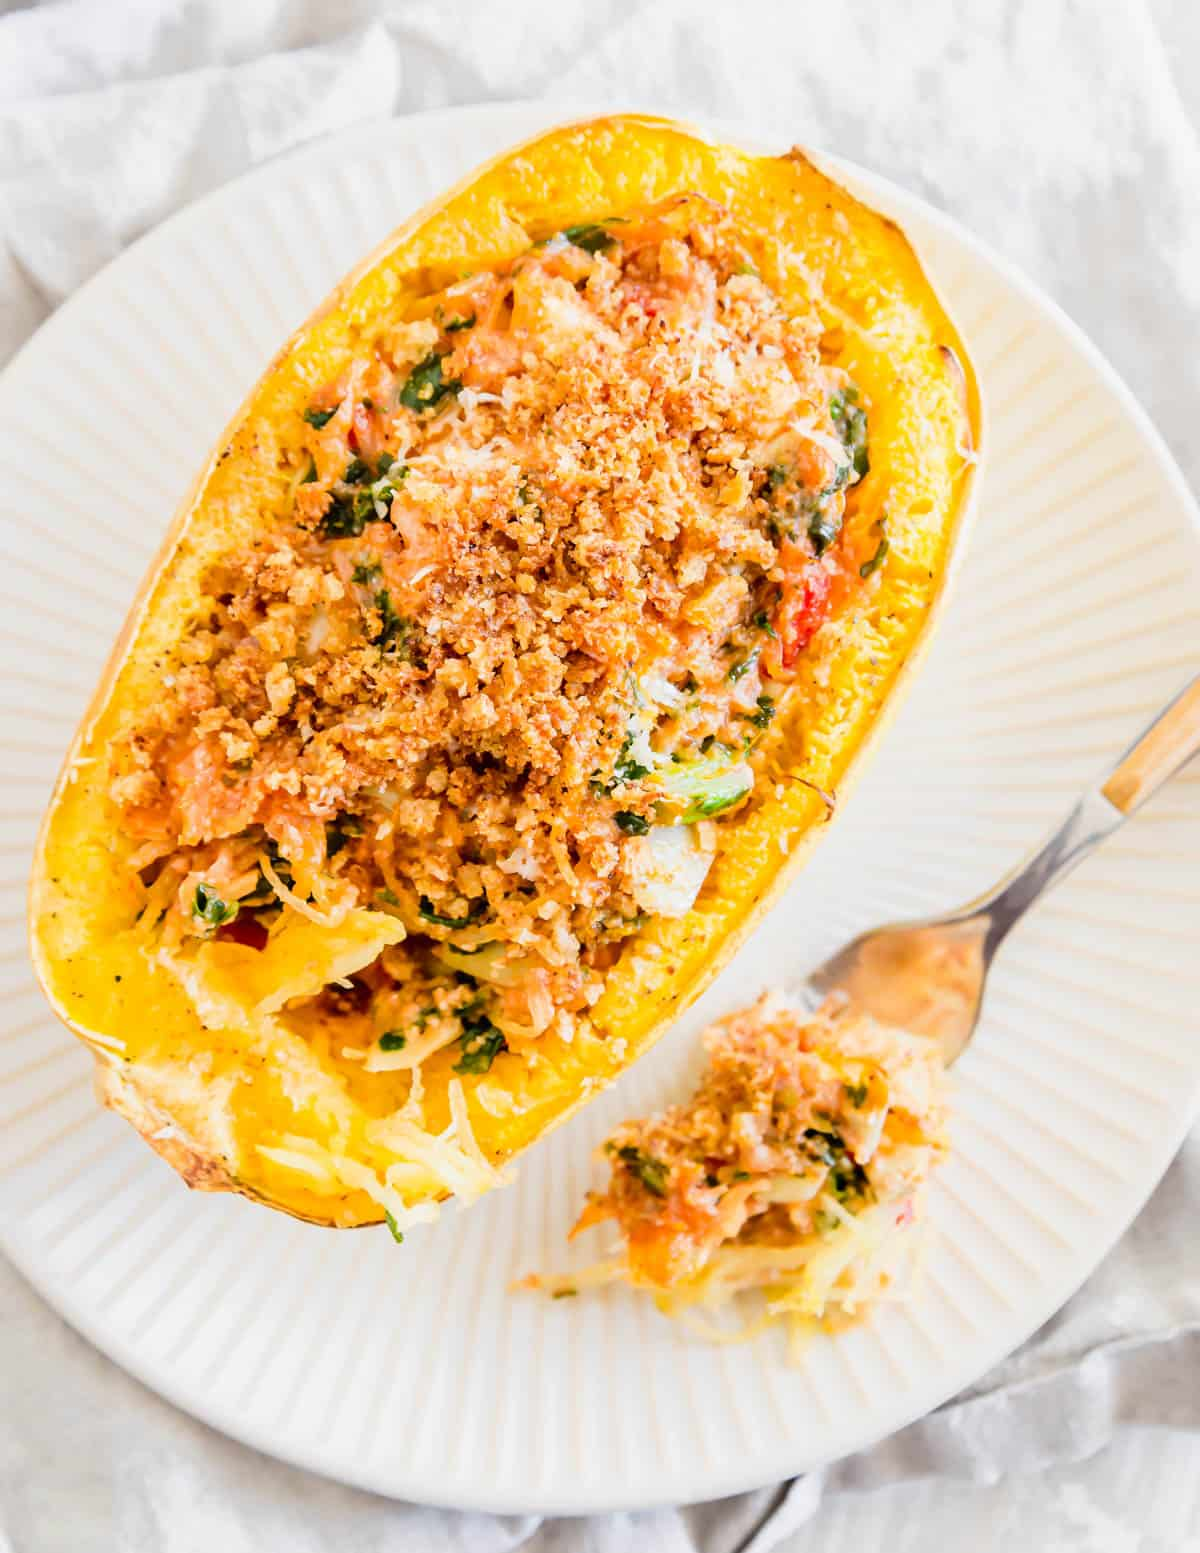 Vegetarian and gluten-free twice baked spaghetti squash is a decadent and comforting fall or winter meal